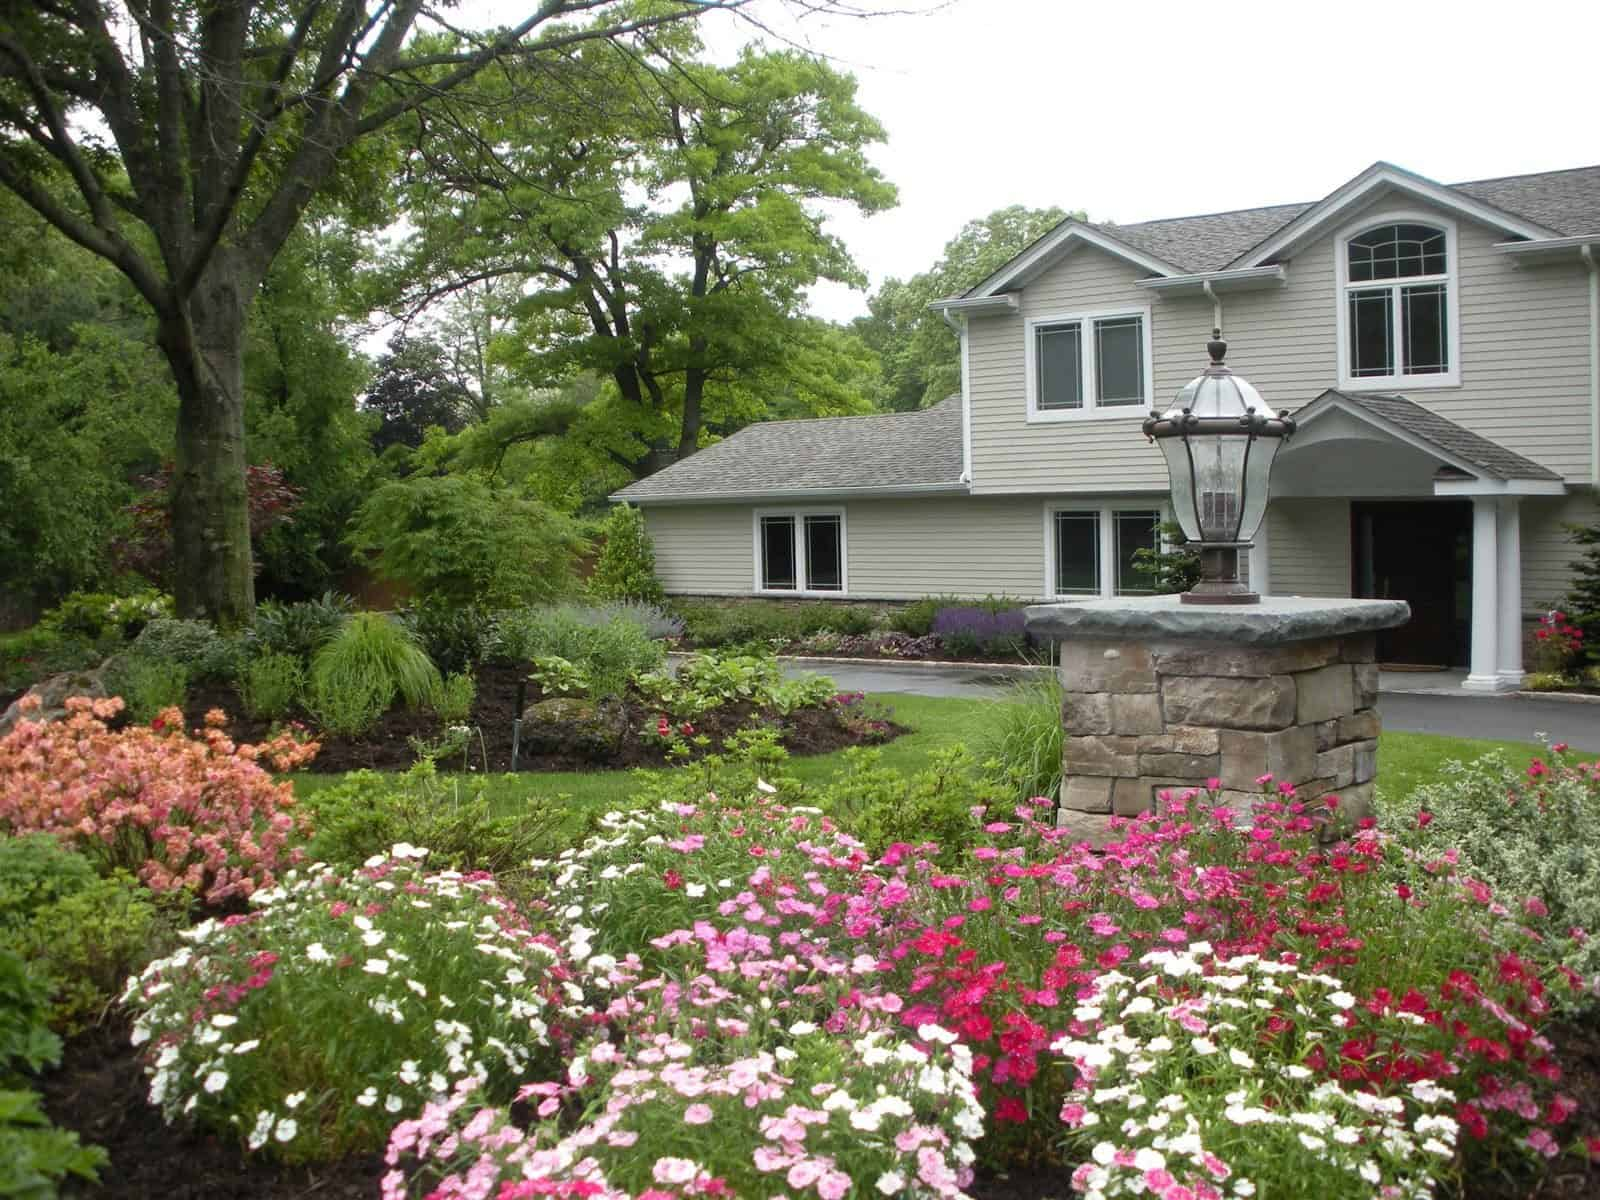 Landscape Plantings - Foreground - Verbena and Azalea - Background - Japanese Maple and mixed perennials - Dix Hills, Long Island NY